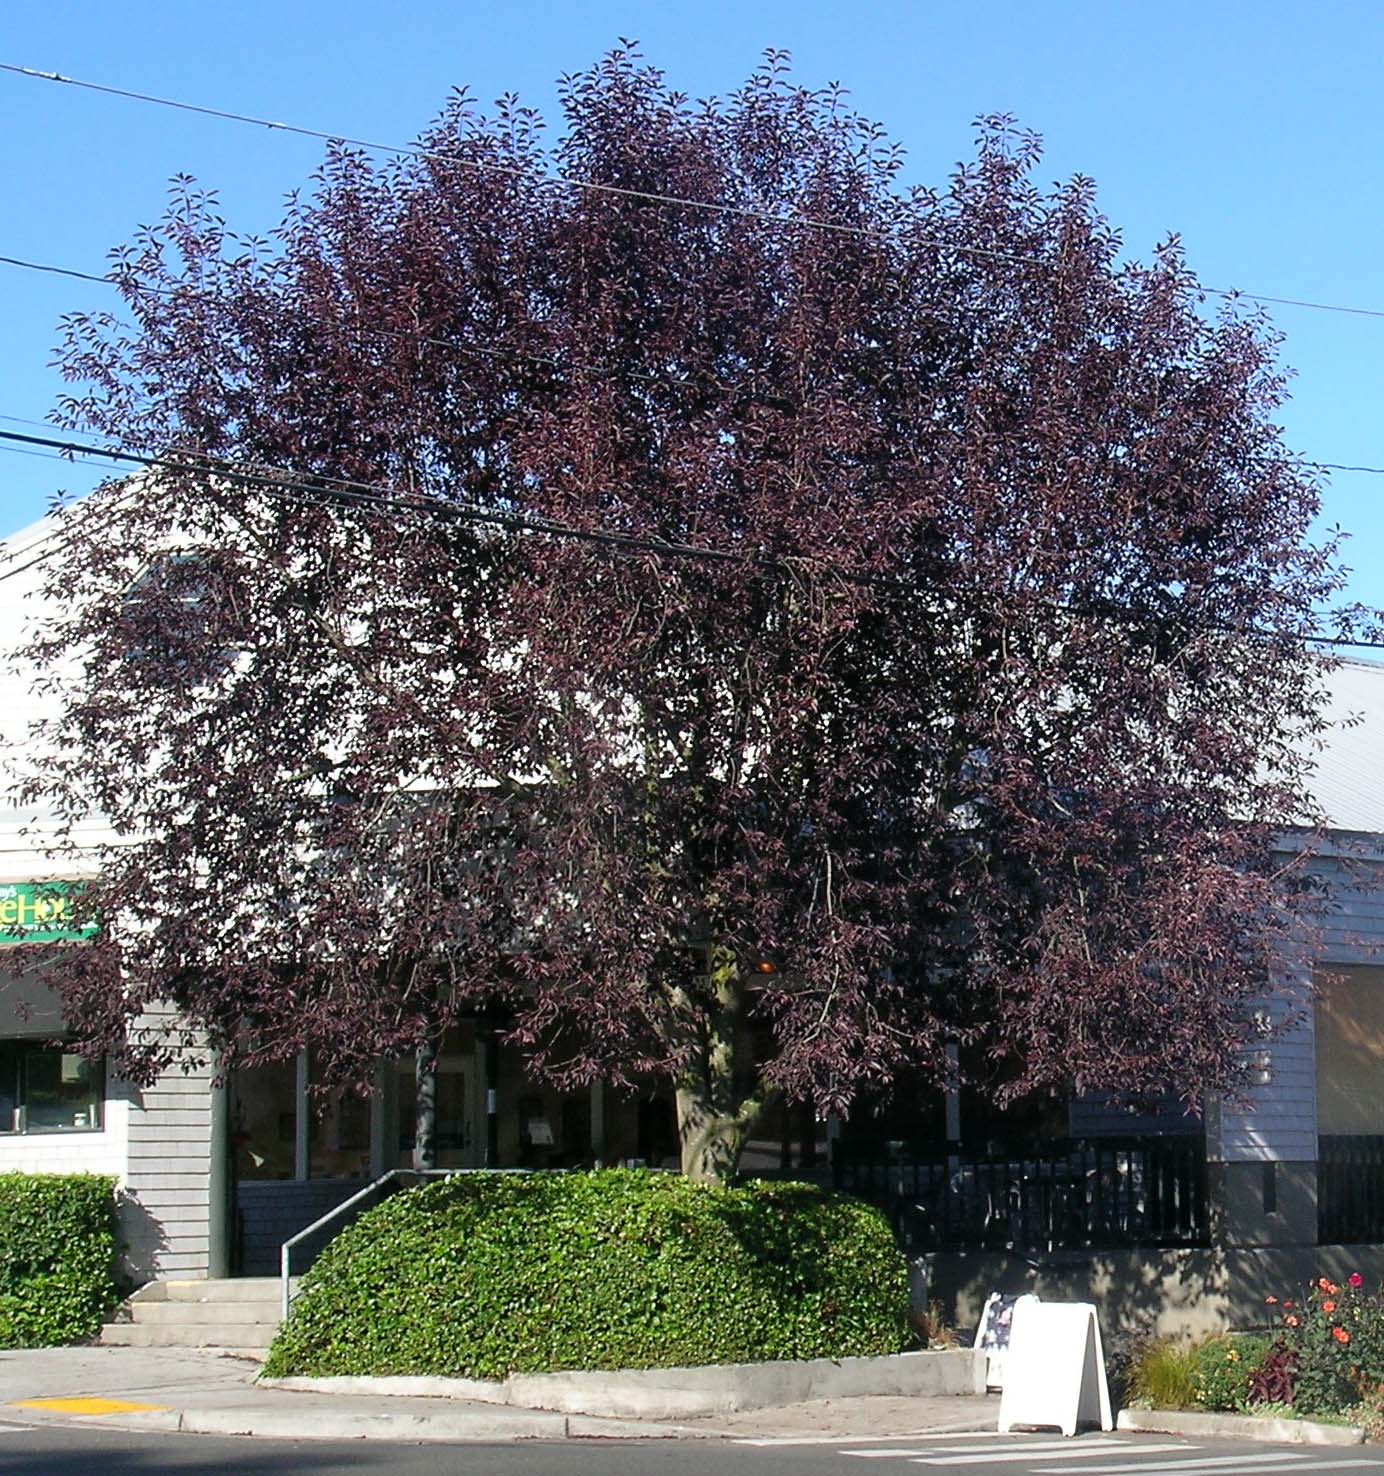 Canada Red Chokecherry Ornamental Cherry Trees